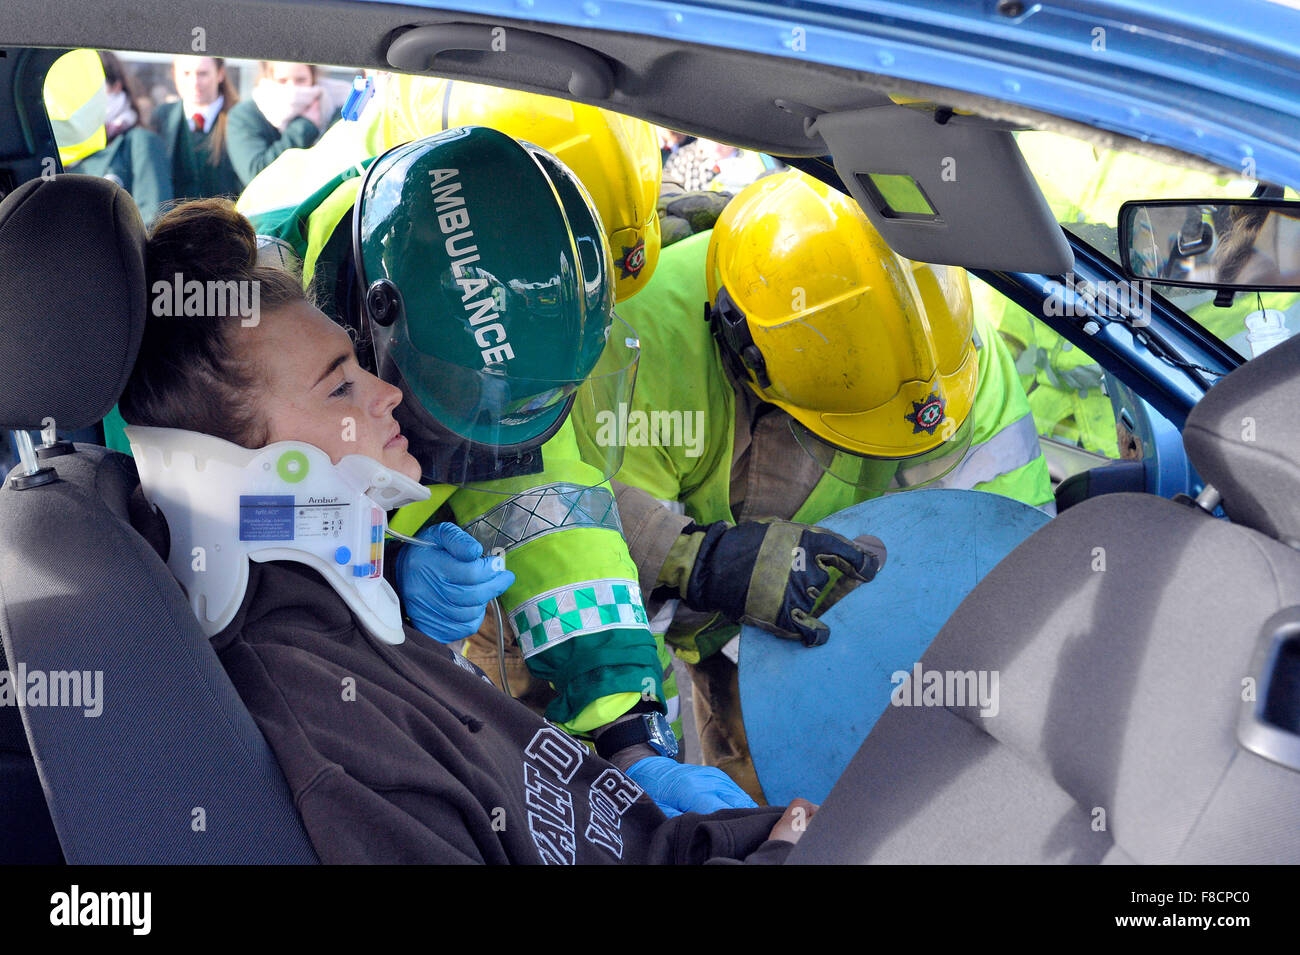 Emergency services car accident simulation in Londonderry, Northern ...